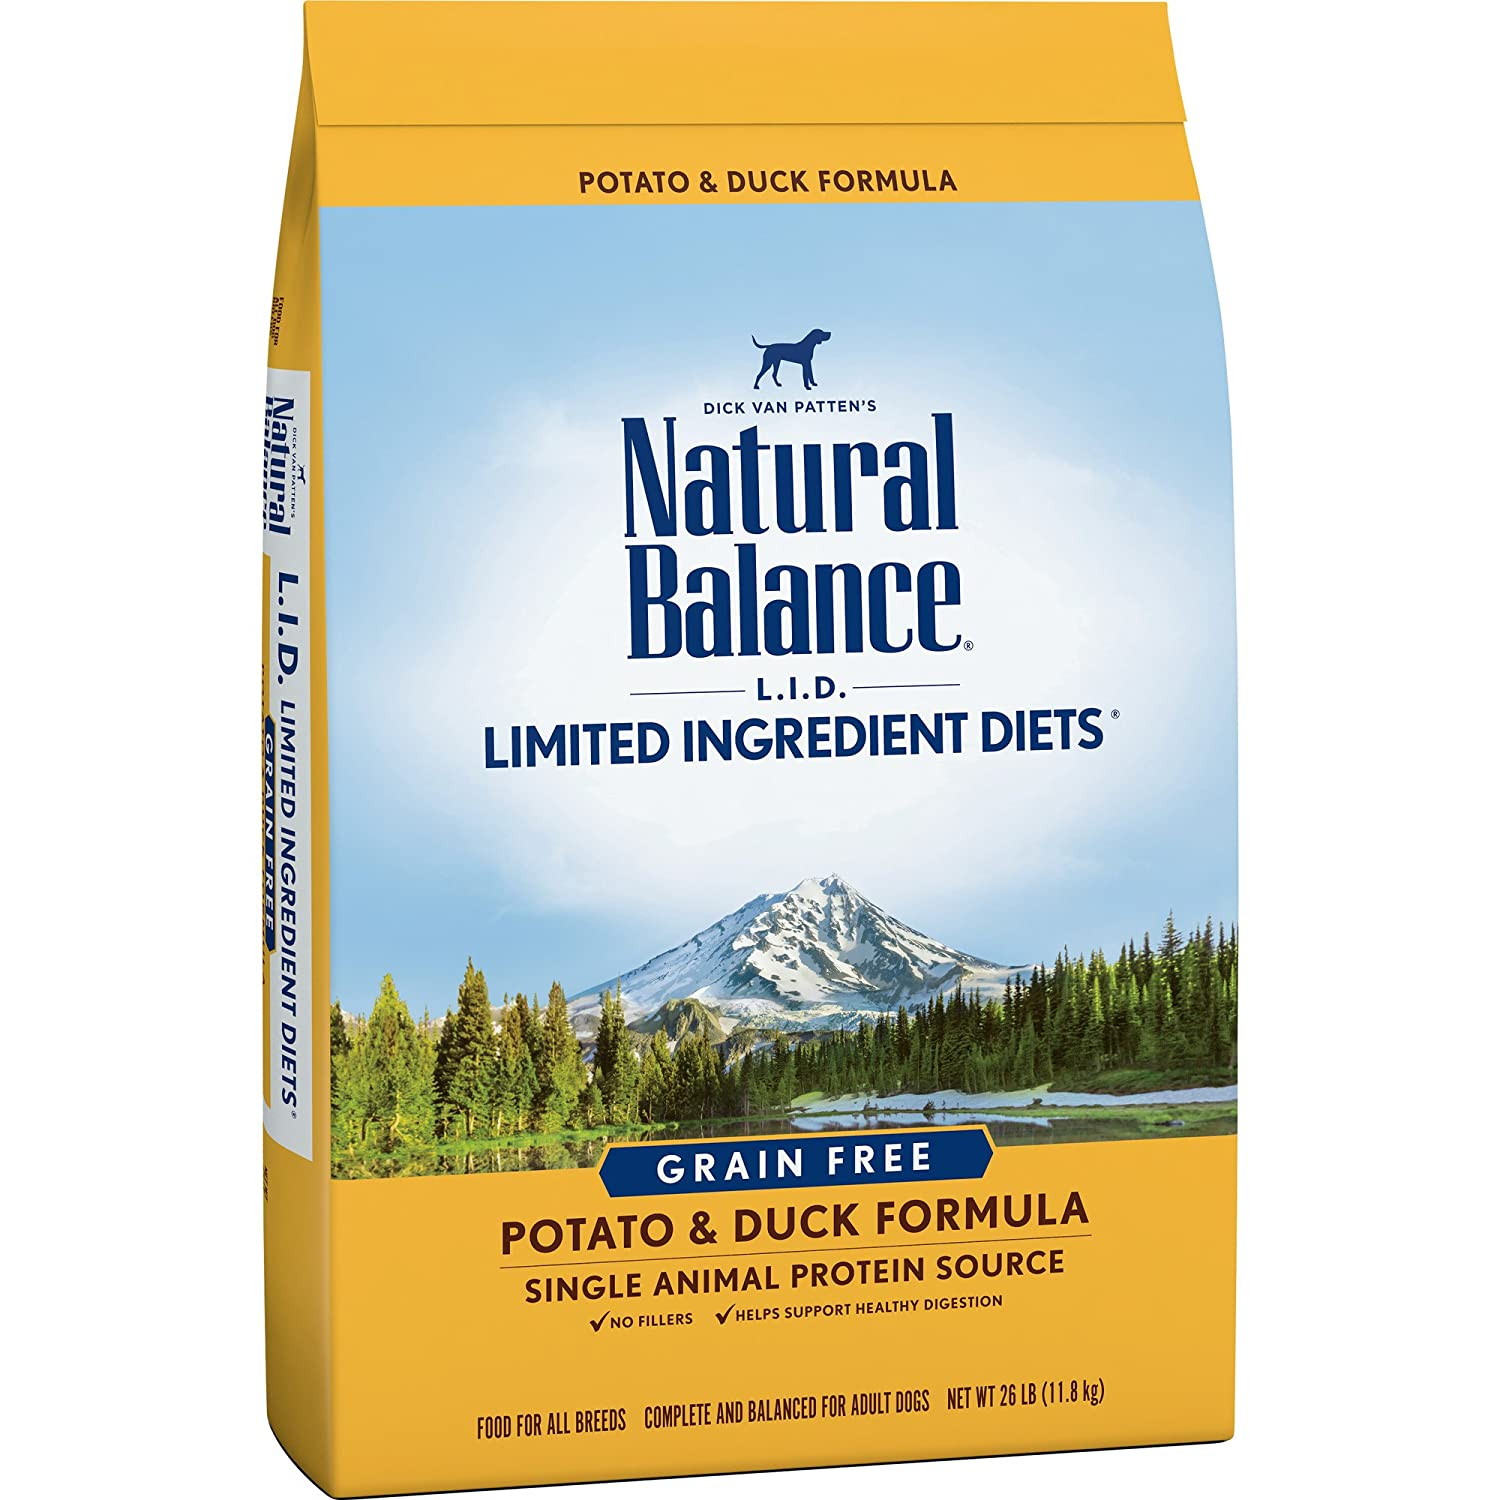 Natural Balance Limited Ingredient Dry Dog Food   Potato & Duck Formula by Natural Balance